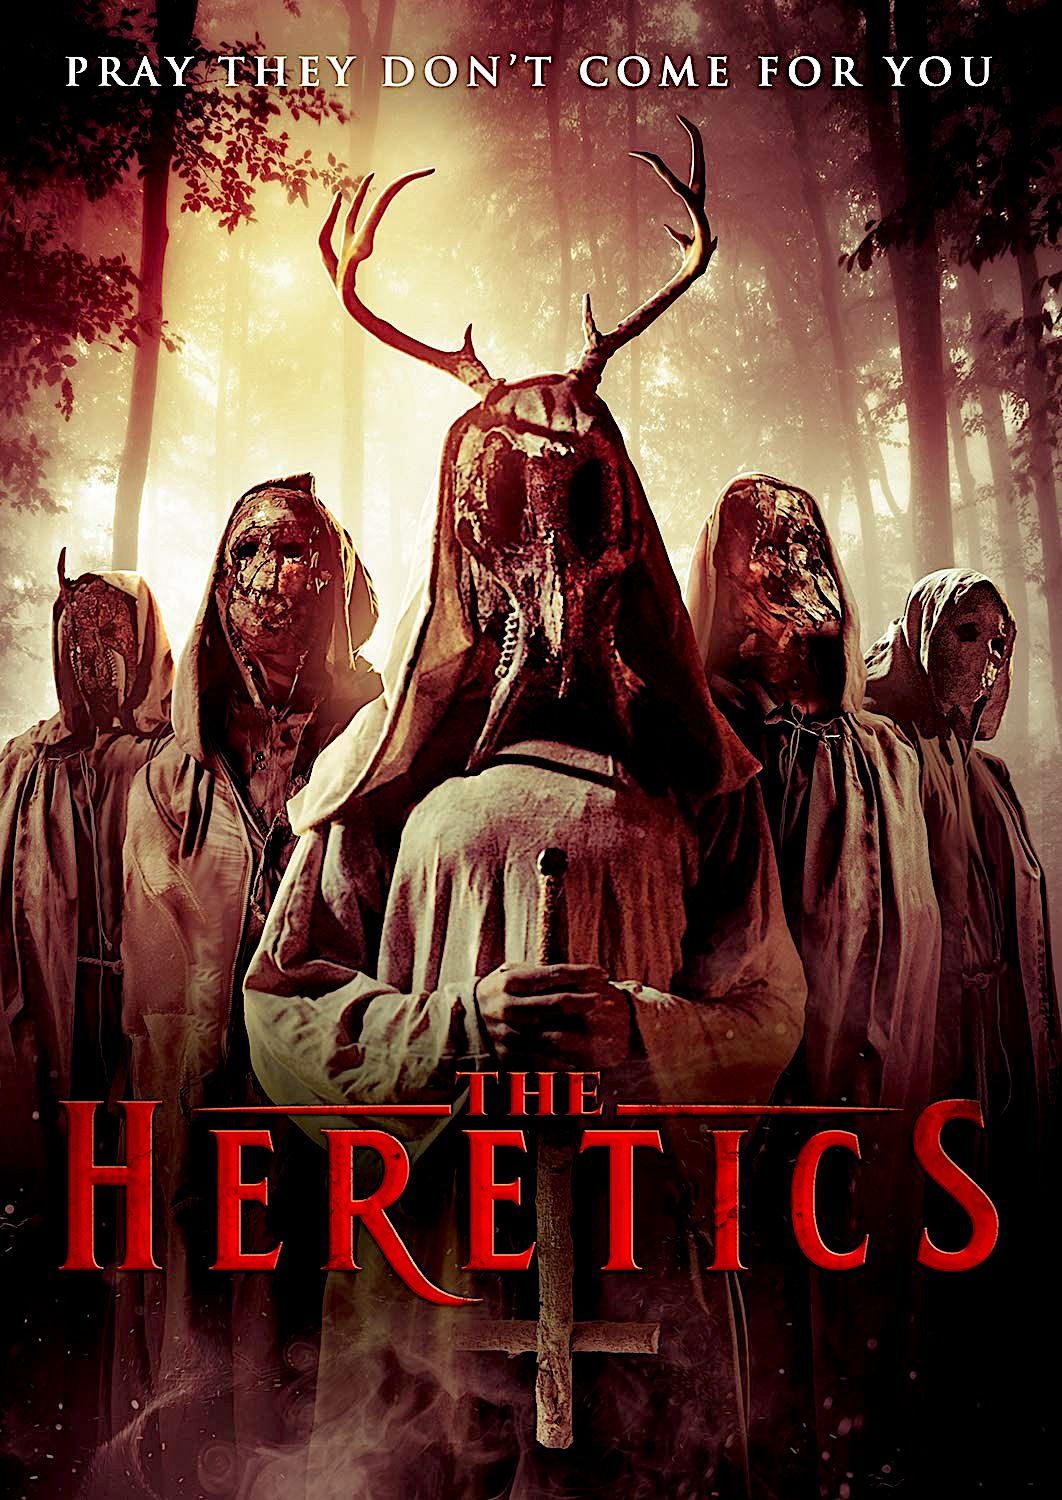 The Heretics Dvd Uncork D Entertainment Movie Posters Horror Movie Trailers Indie Movie Posters